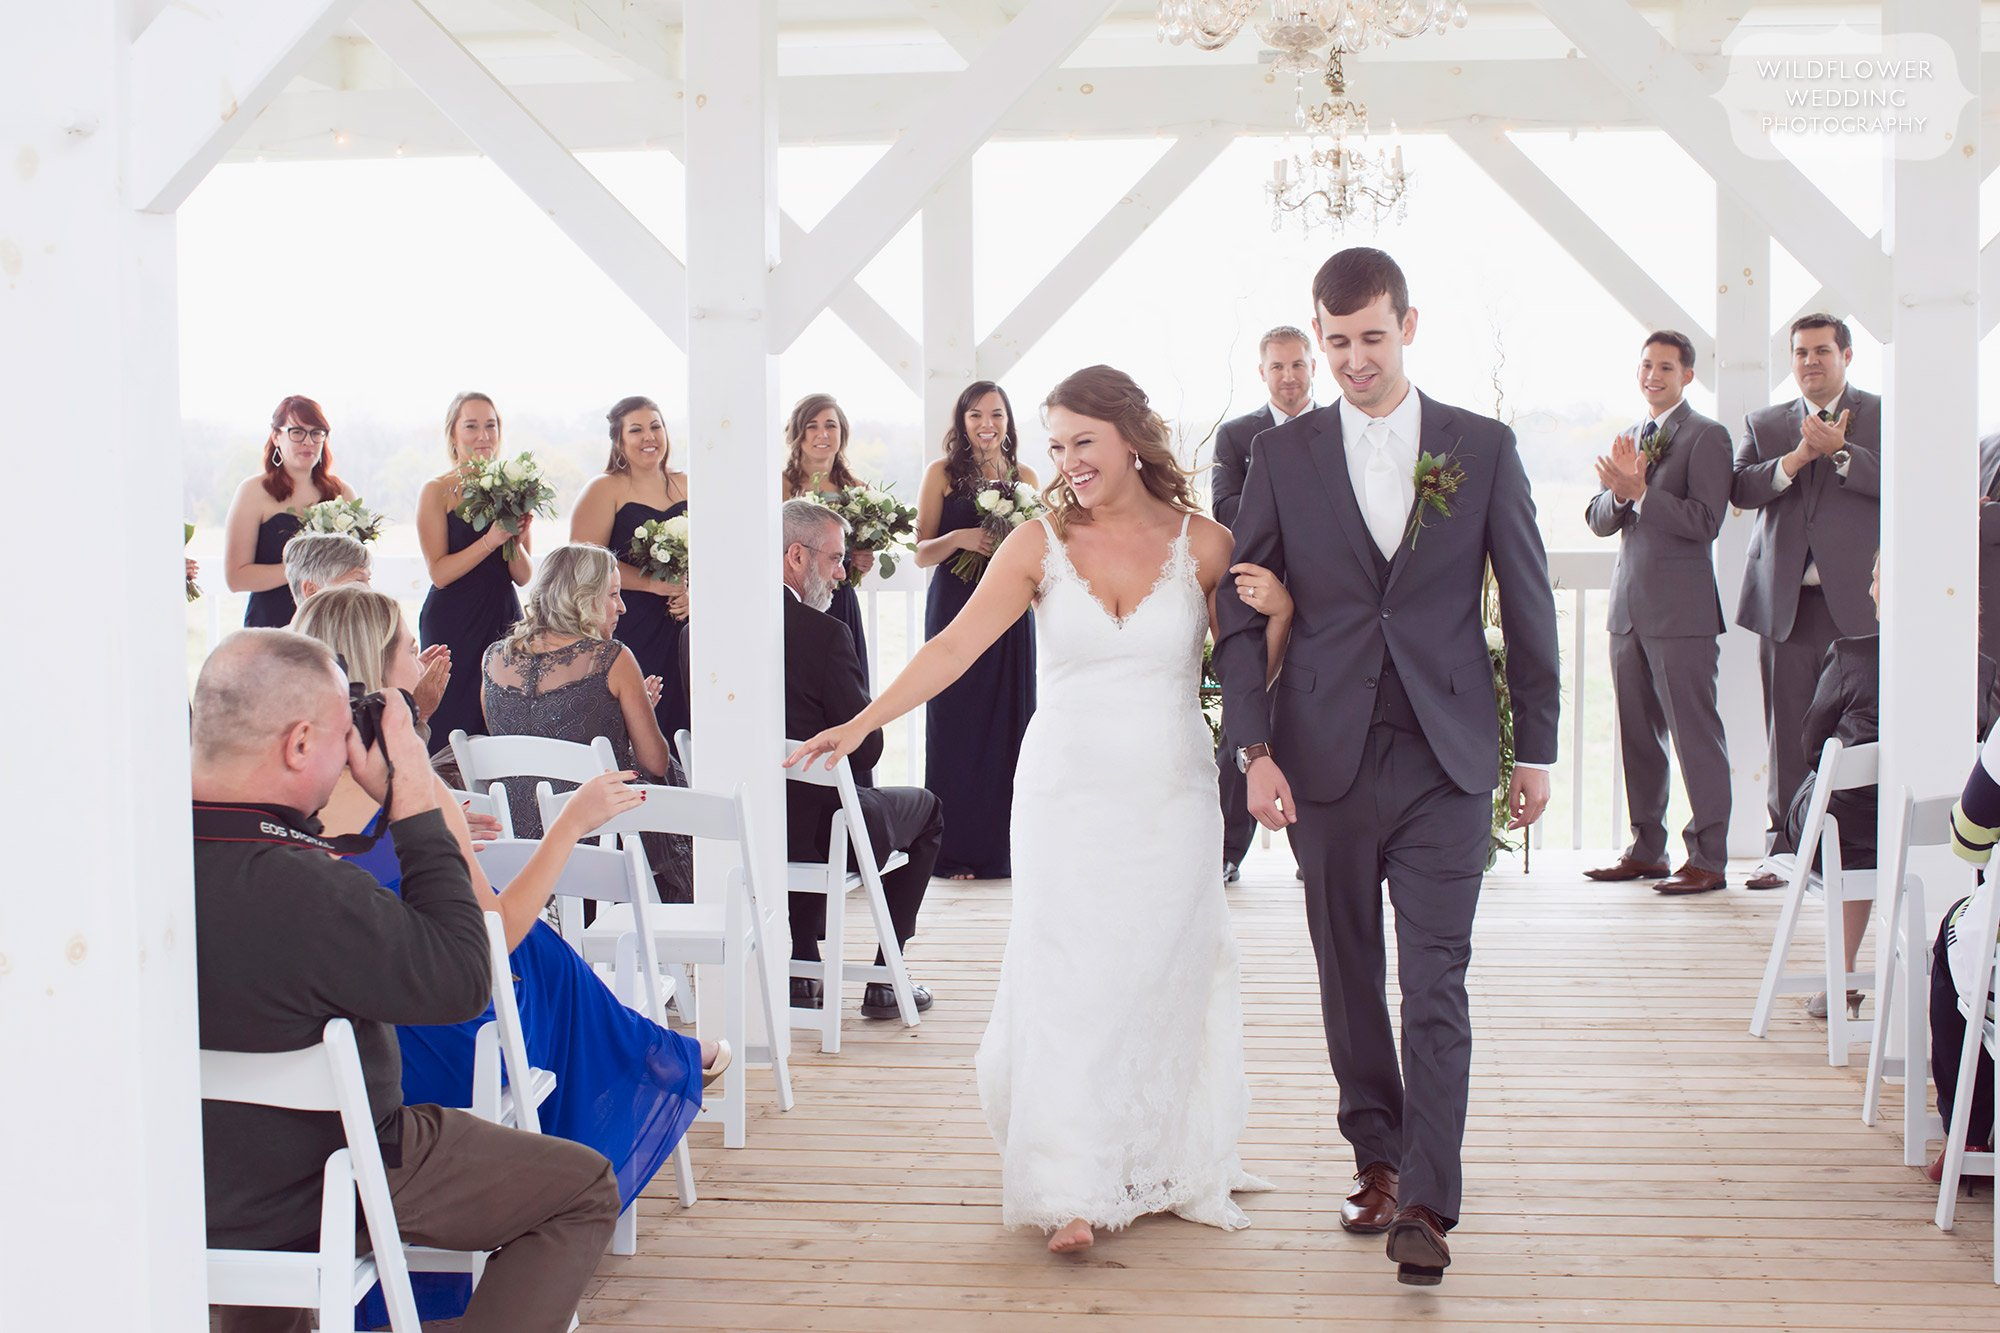 The Blue Bell Farm wedding venue has a bright and ethereal covered deck with surrounding rolling hills.